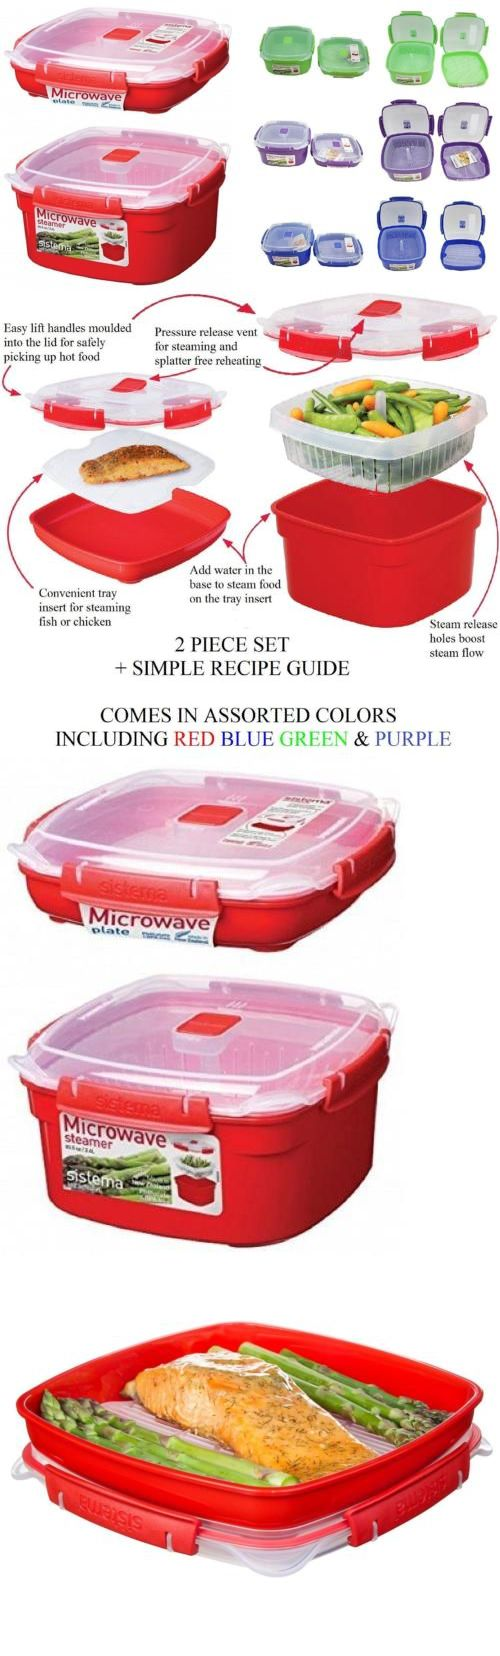 Microwave Cooking Gadgets 20633: Sistema 2 Piece Medium Microwave Steamer  And Plate Set With A